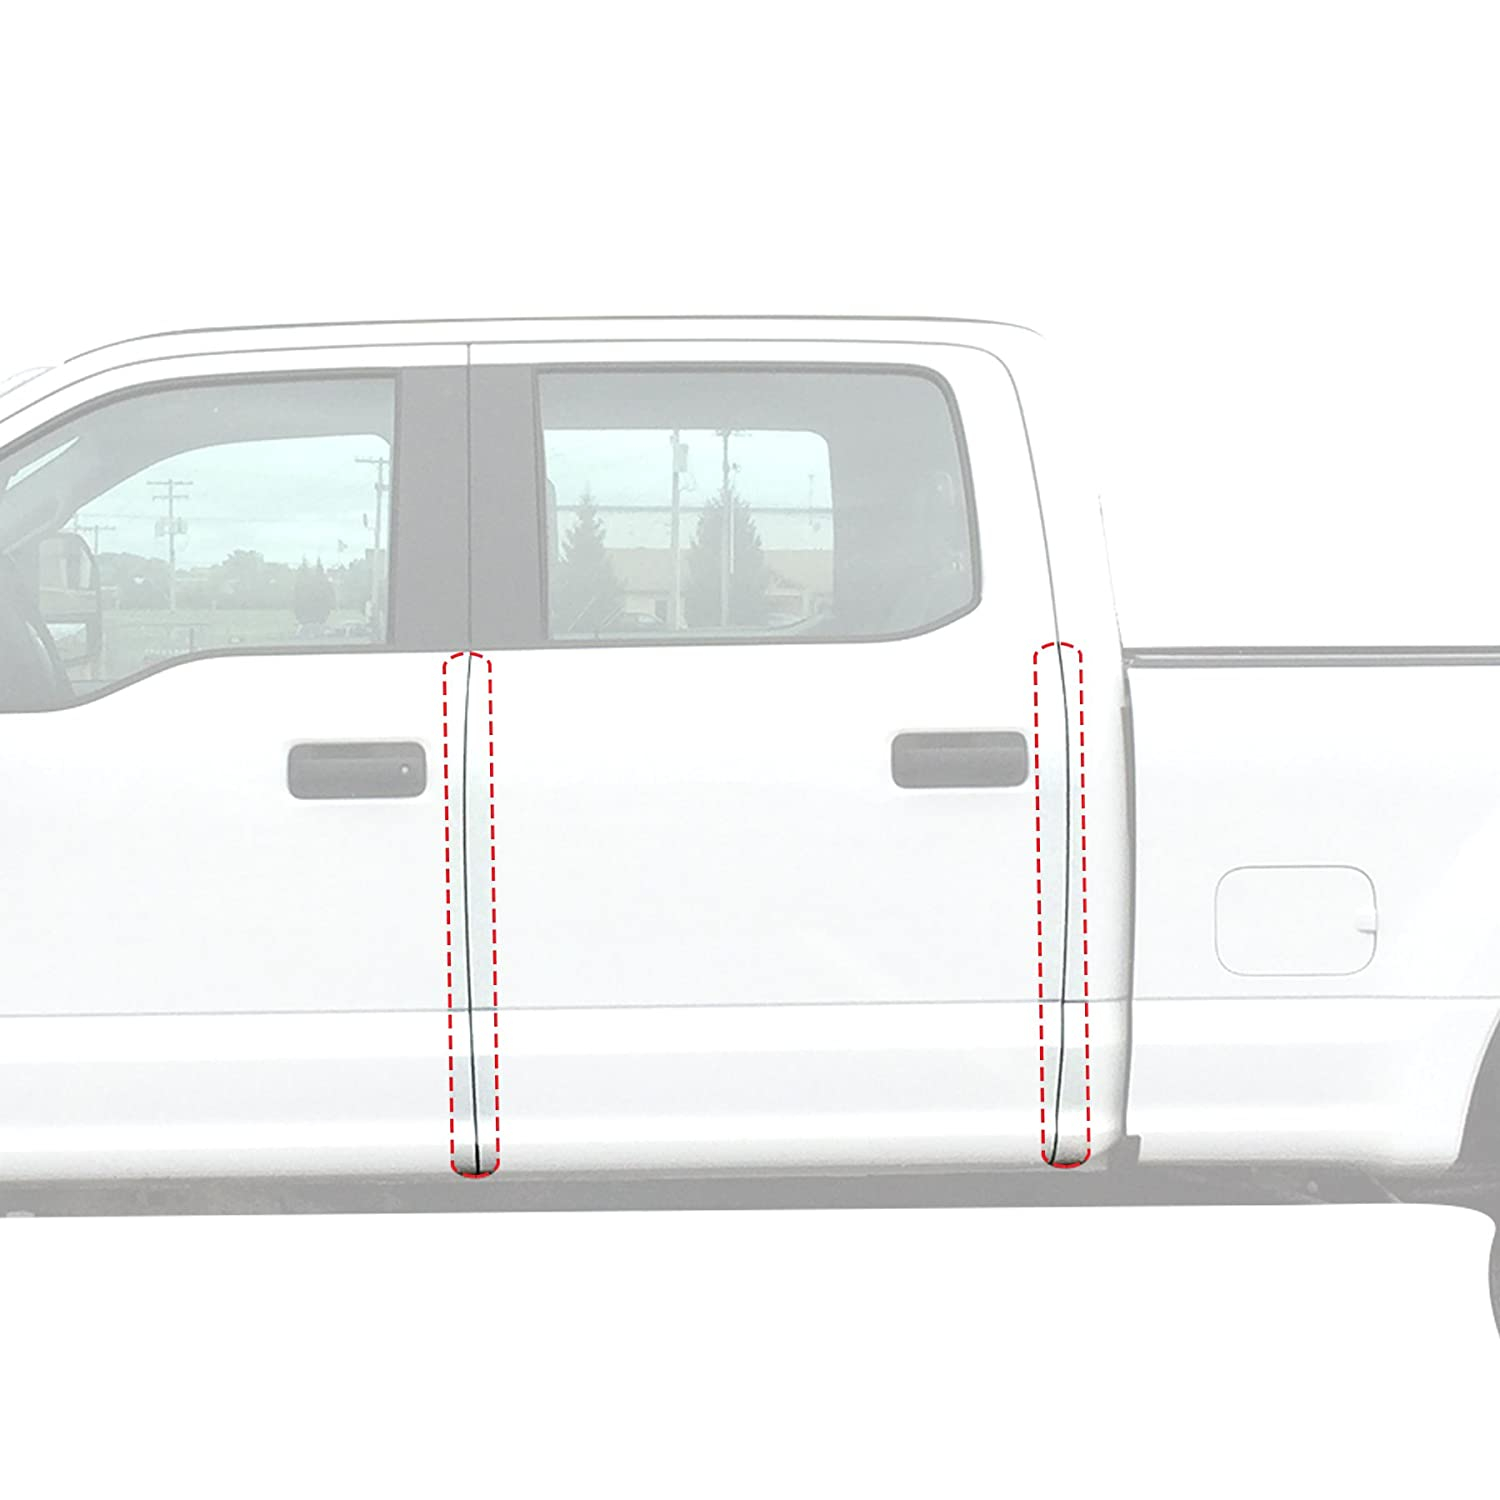 Red Hound Auto Door Edge Lip Guards 2017-2018 Compatible with Ford Super Duty F250/F350 Crew Cab 4pc Clear Paint Protector Film Not Universal Pre-Cut Custom Fit